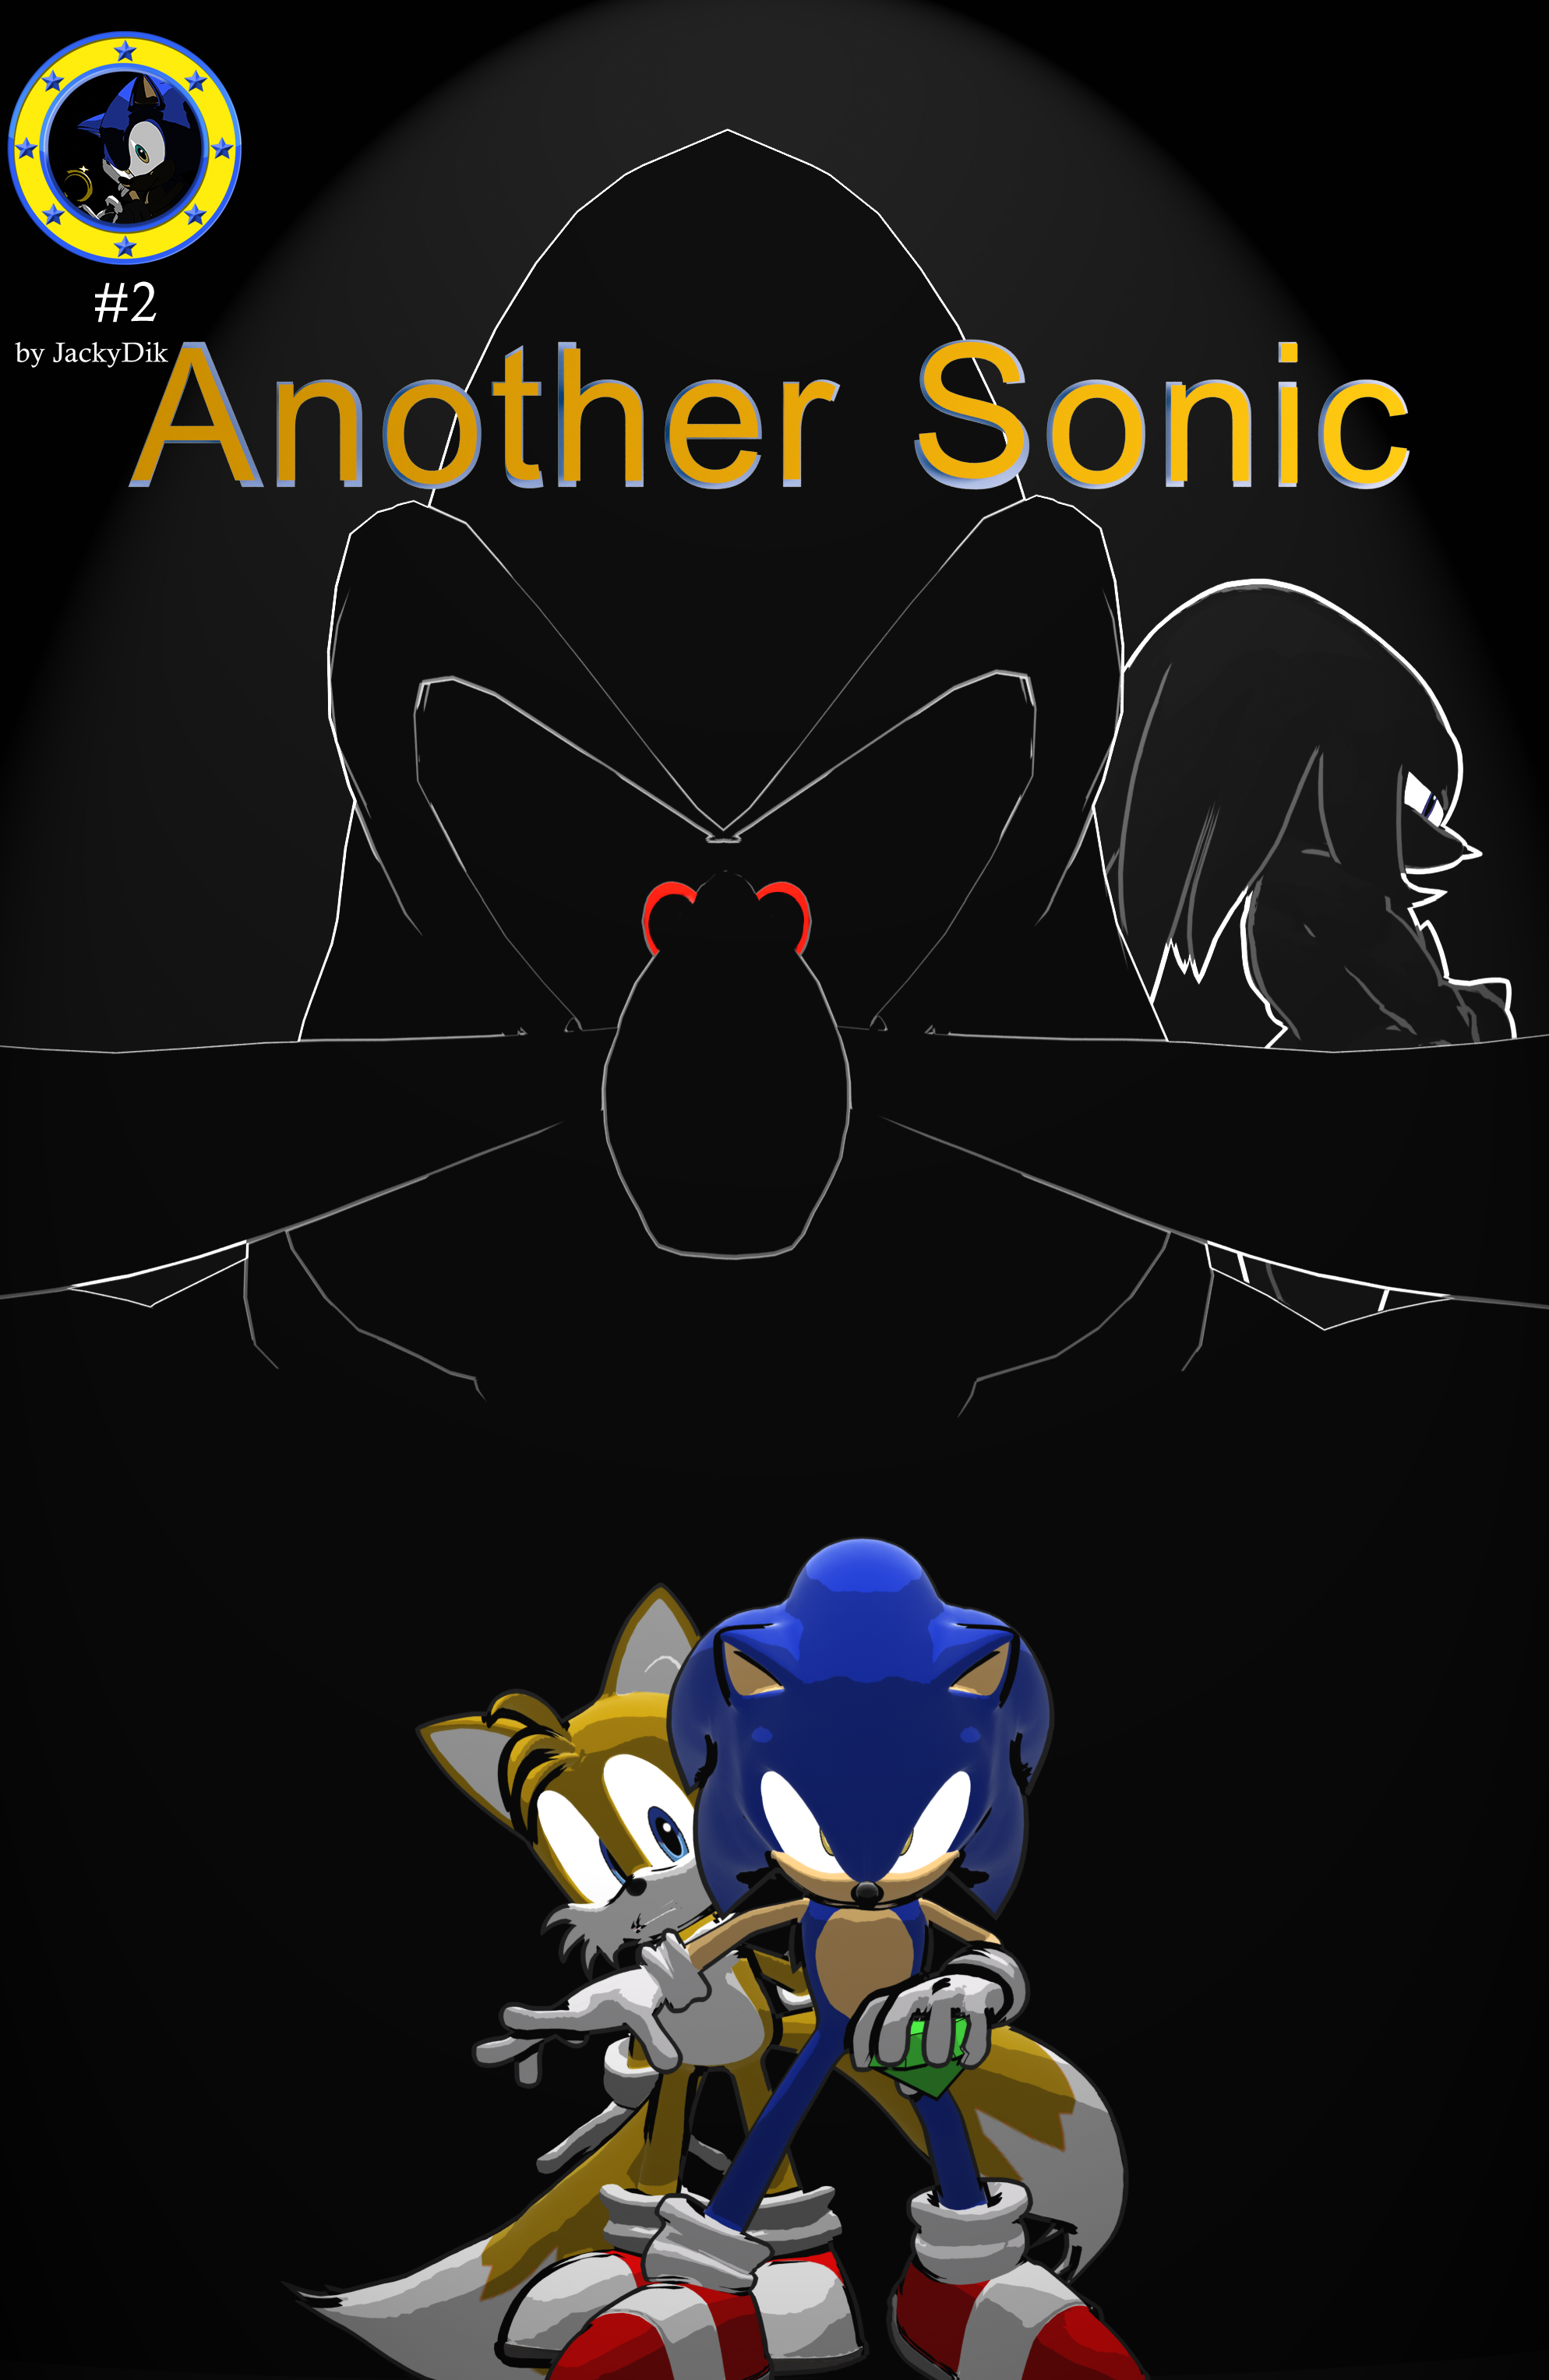 another_sonic__2_cover_by_jackydik-d9zlf